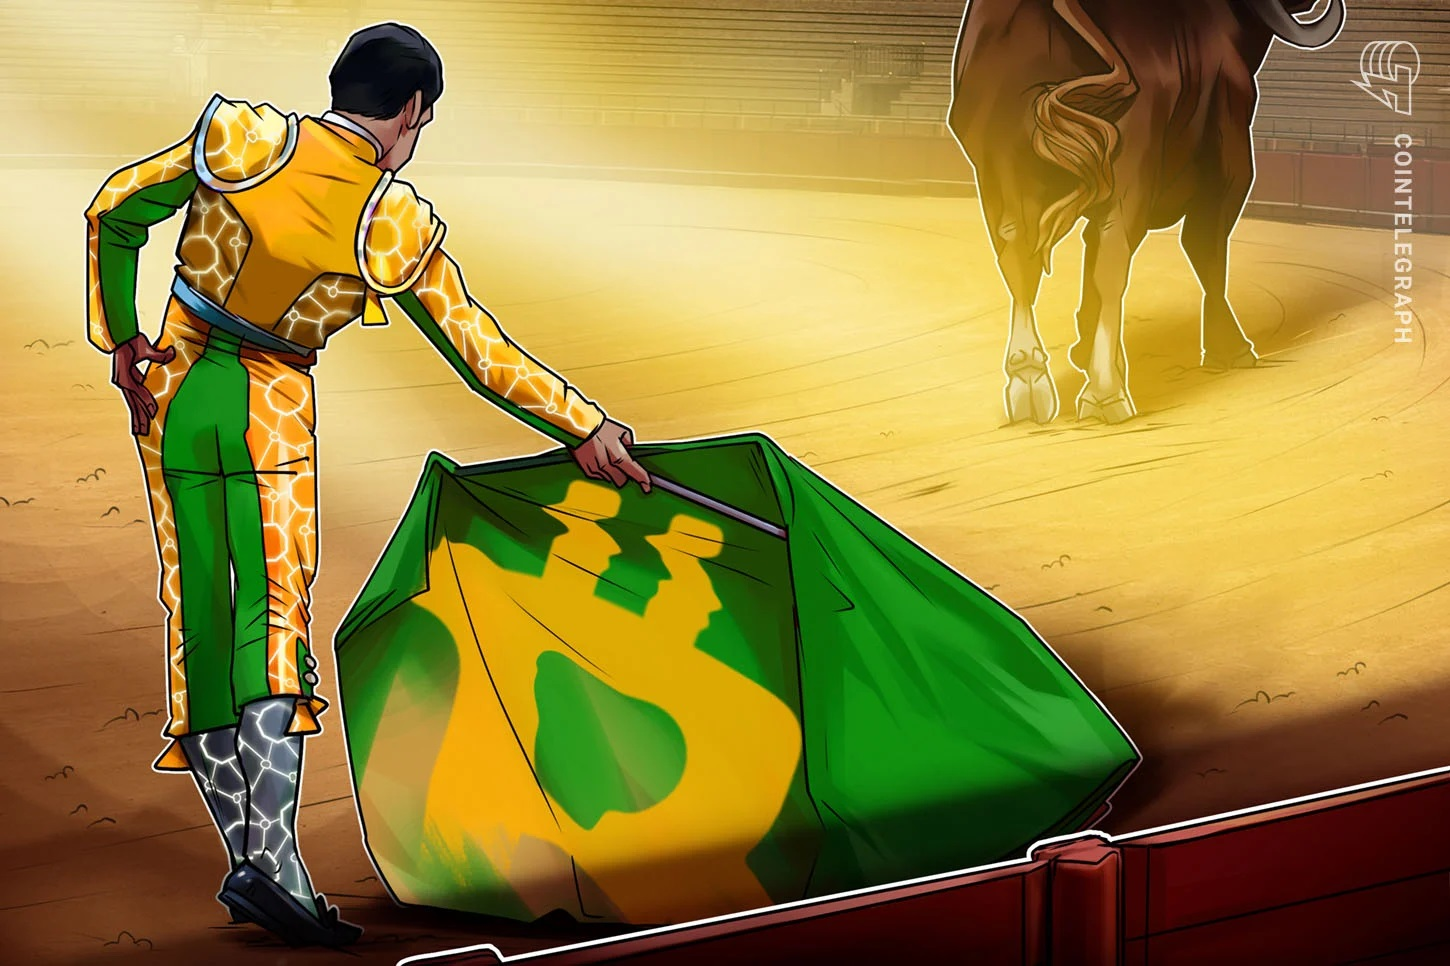 Bitcoin gains strength as Friday's $600M BTC options expiry approaches